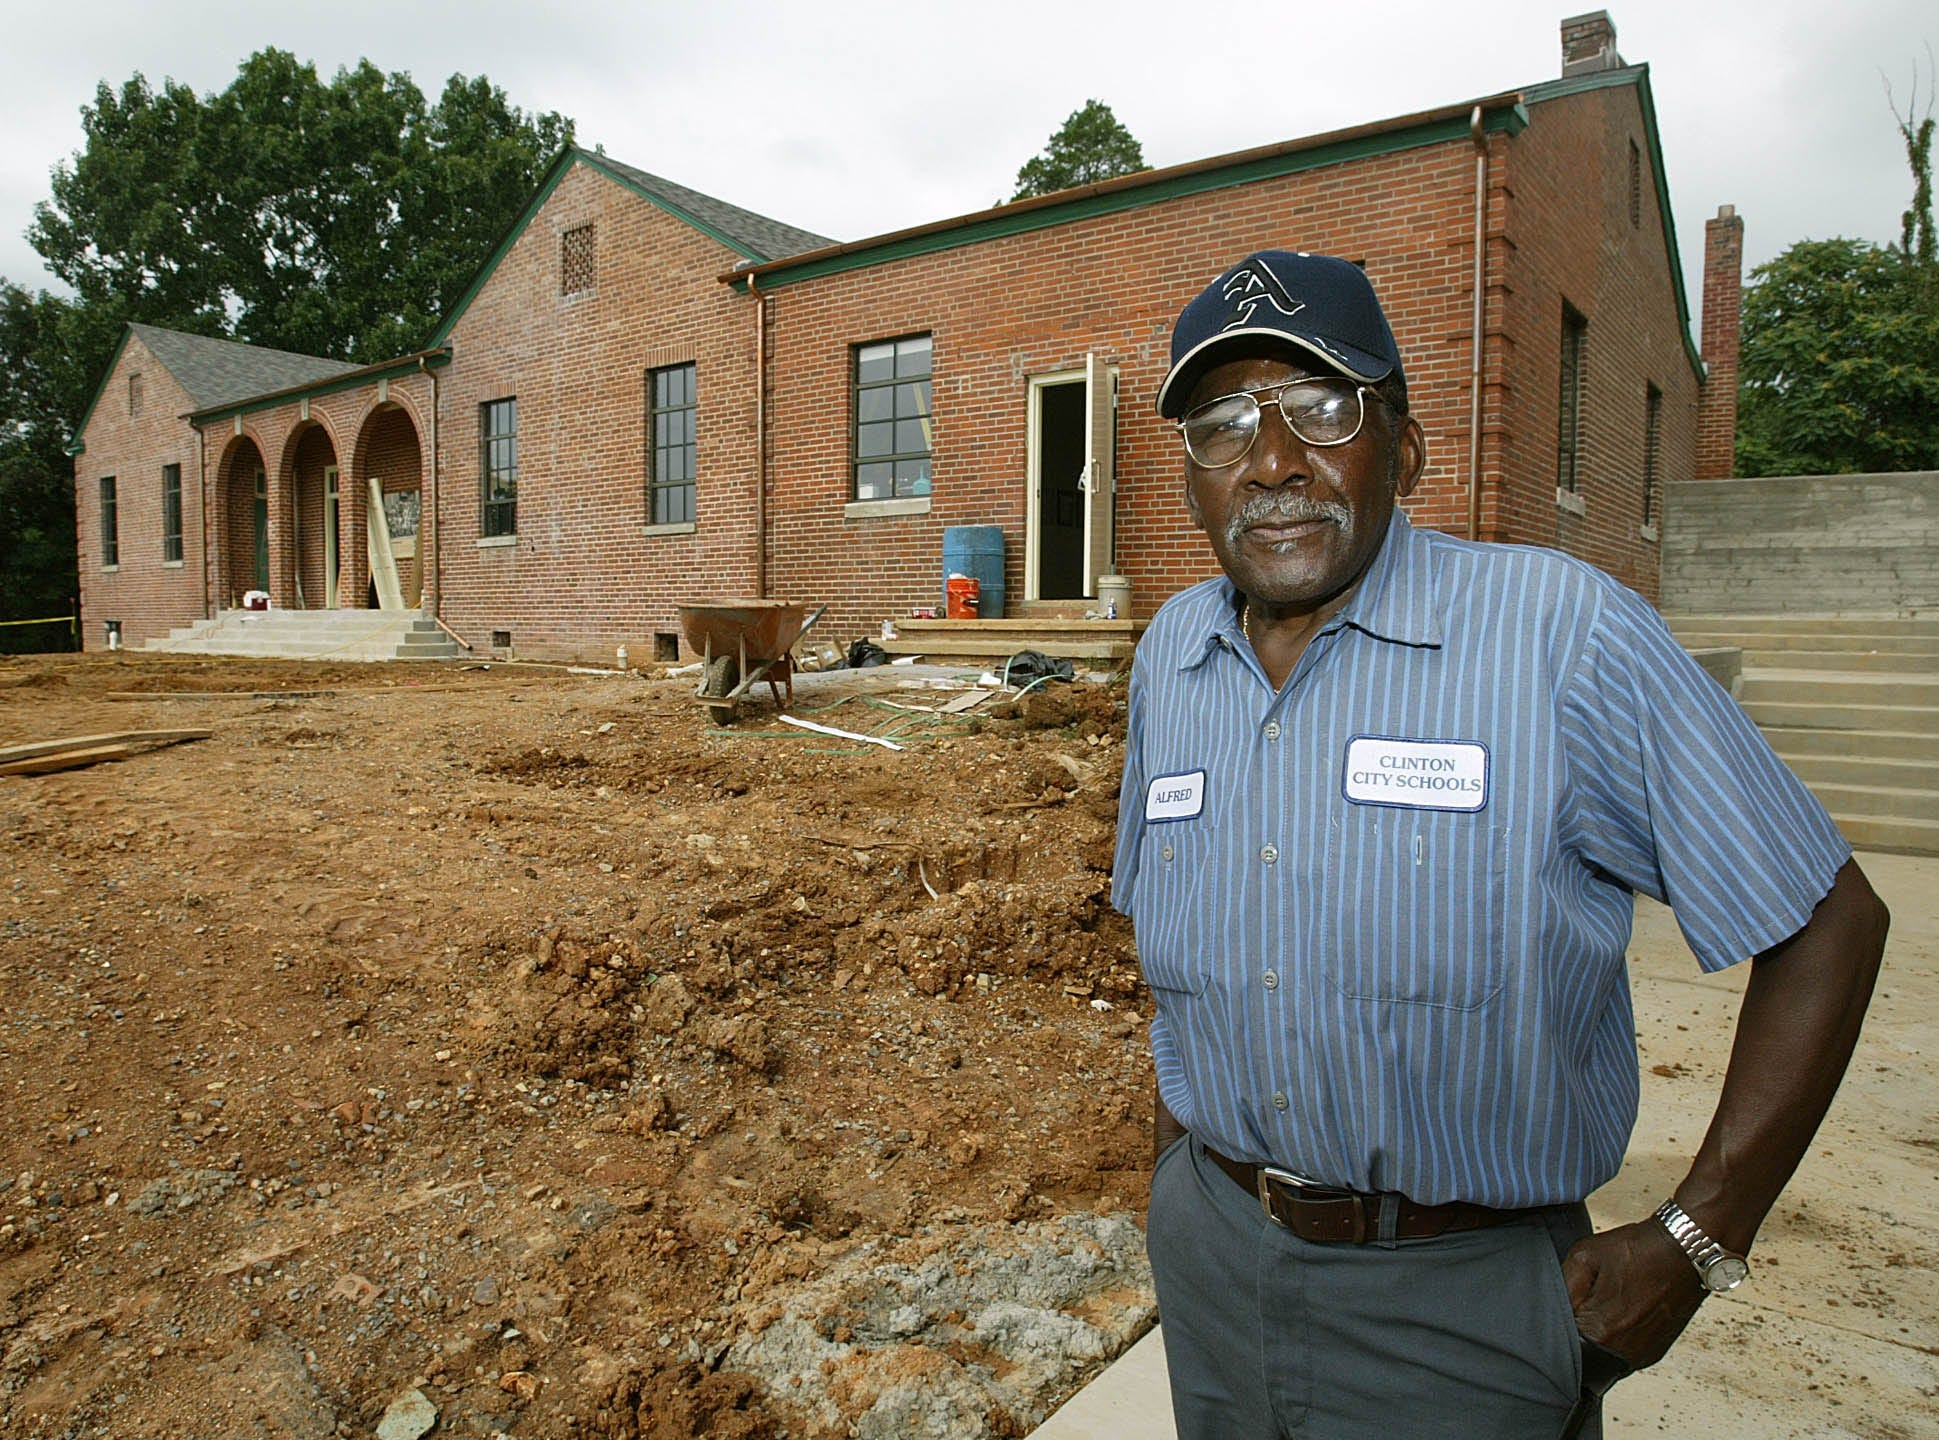 "Alfred Williams, one of 12 black students who integrated Clinton (Tenn.) High School 50 years ago, is shown Monday, Aug. 14, 2006, outside a former schoolhouse in Clinton, Tenn. that will open next week as a museum honoring the ""Clinton 12."" Clinton High School was the first public high school to desegregate in the Old South."